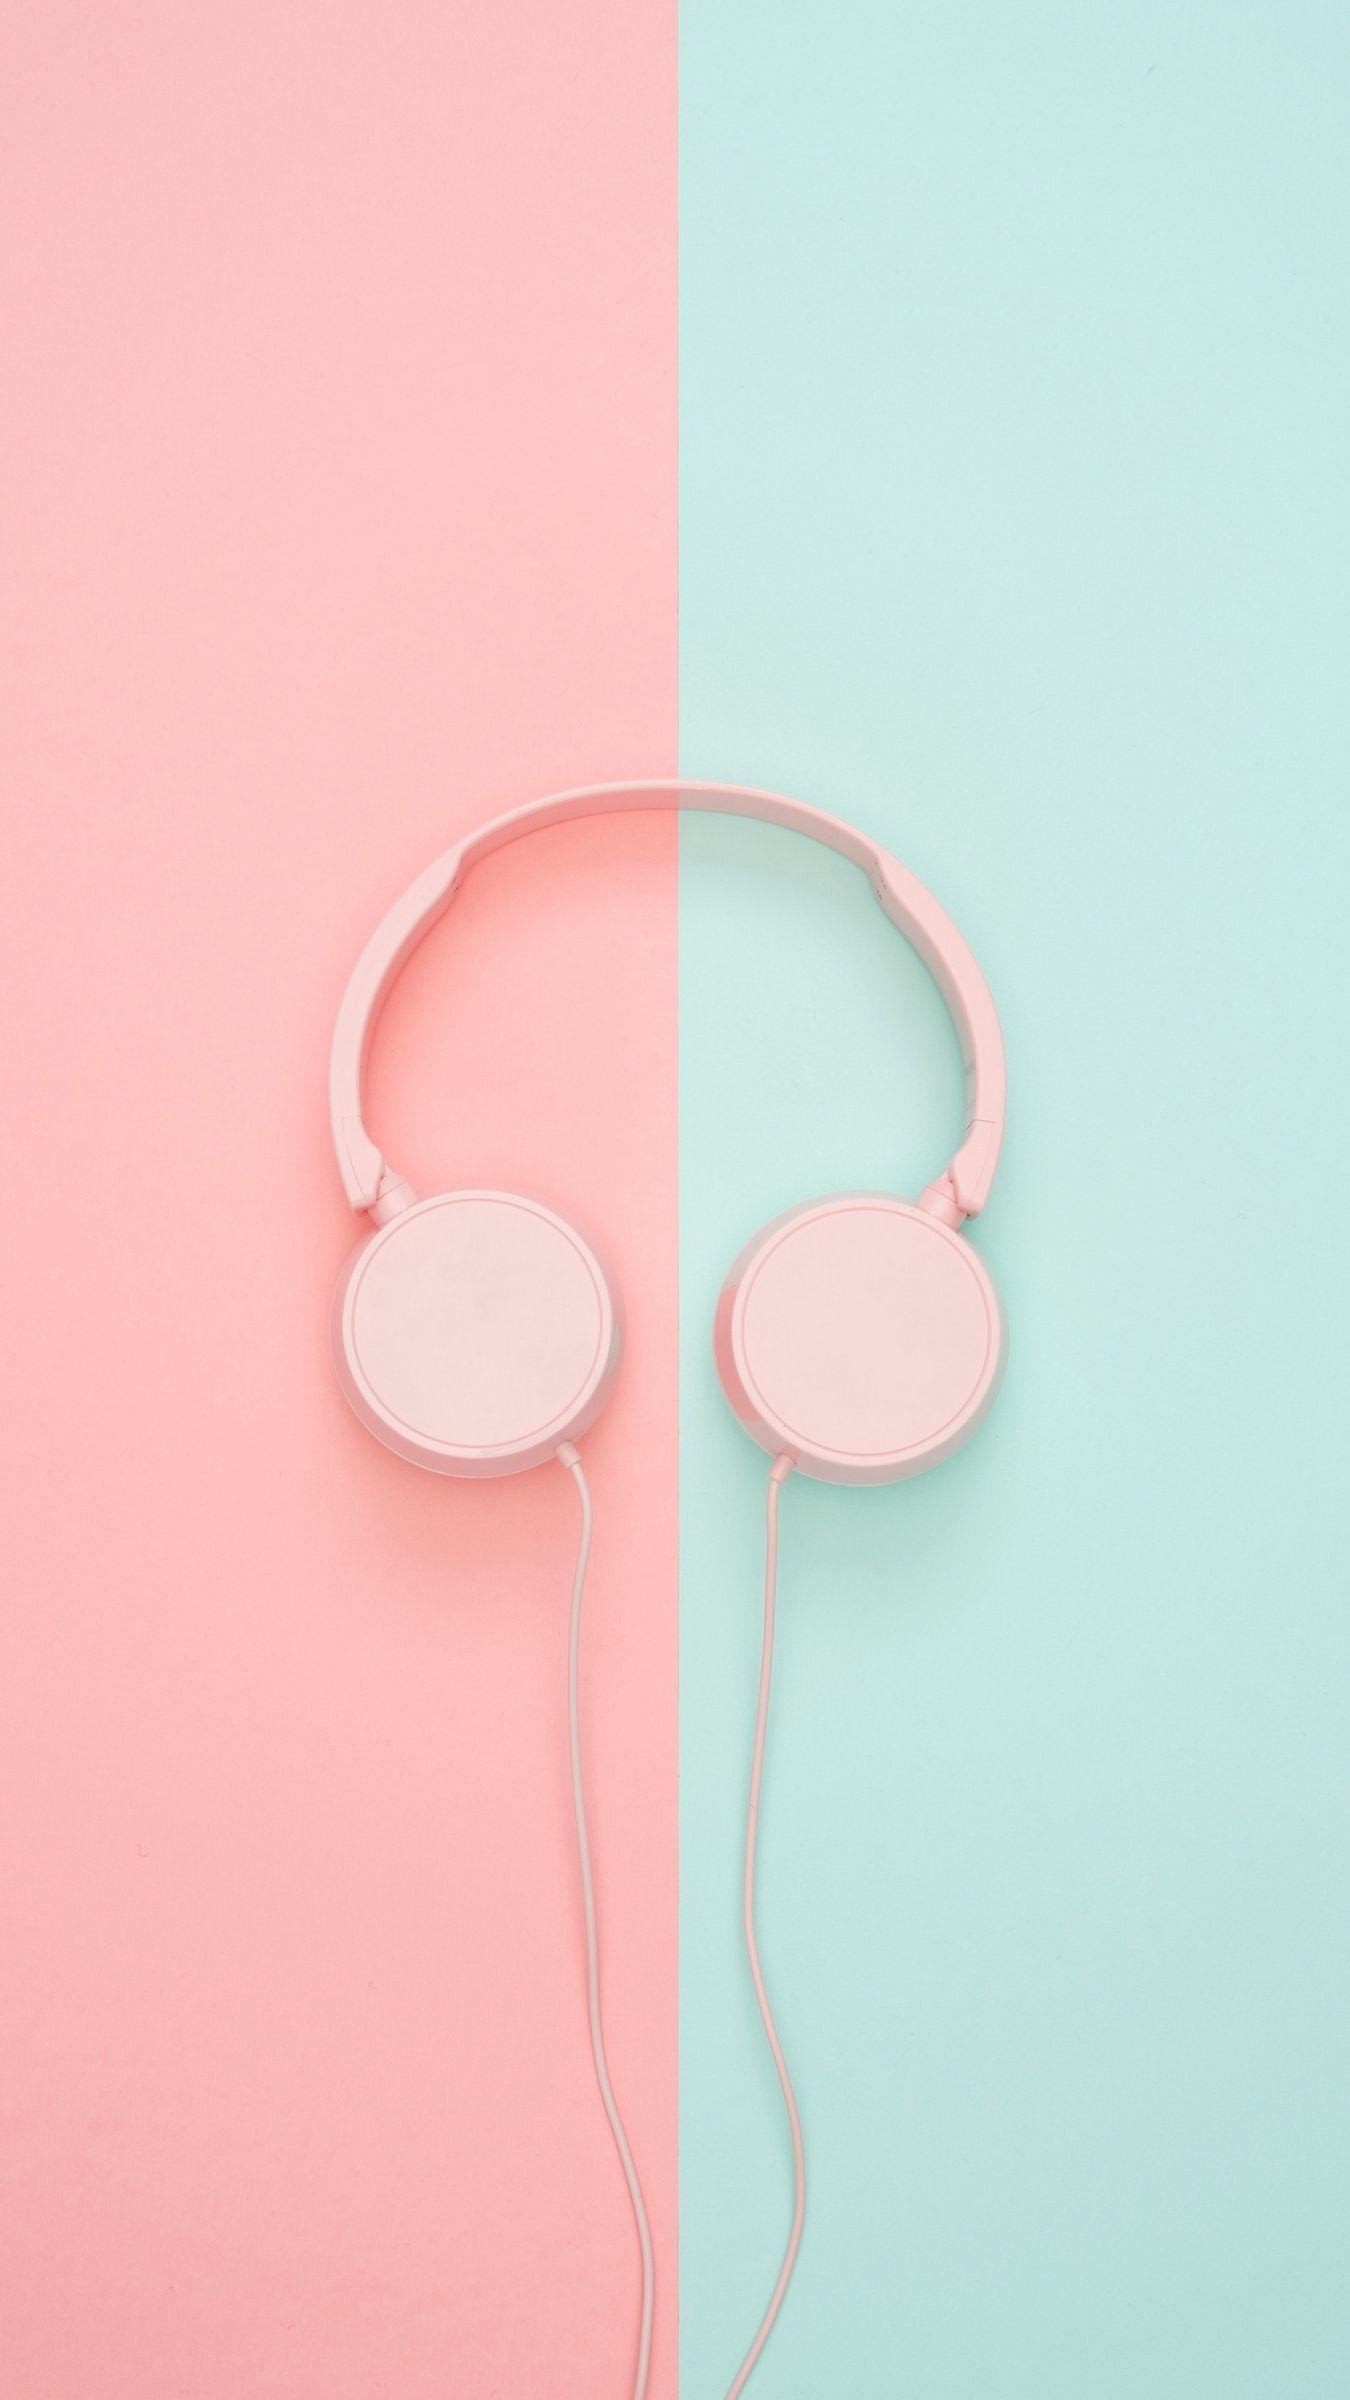 Download wallpapers 1350x2400 headphones, minimalism, pink, pastel